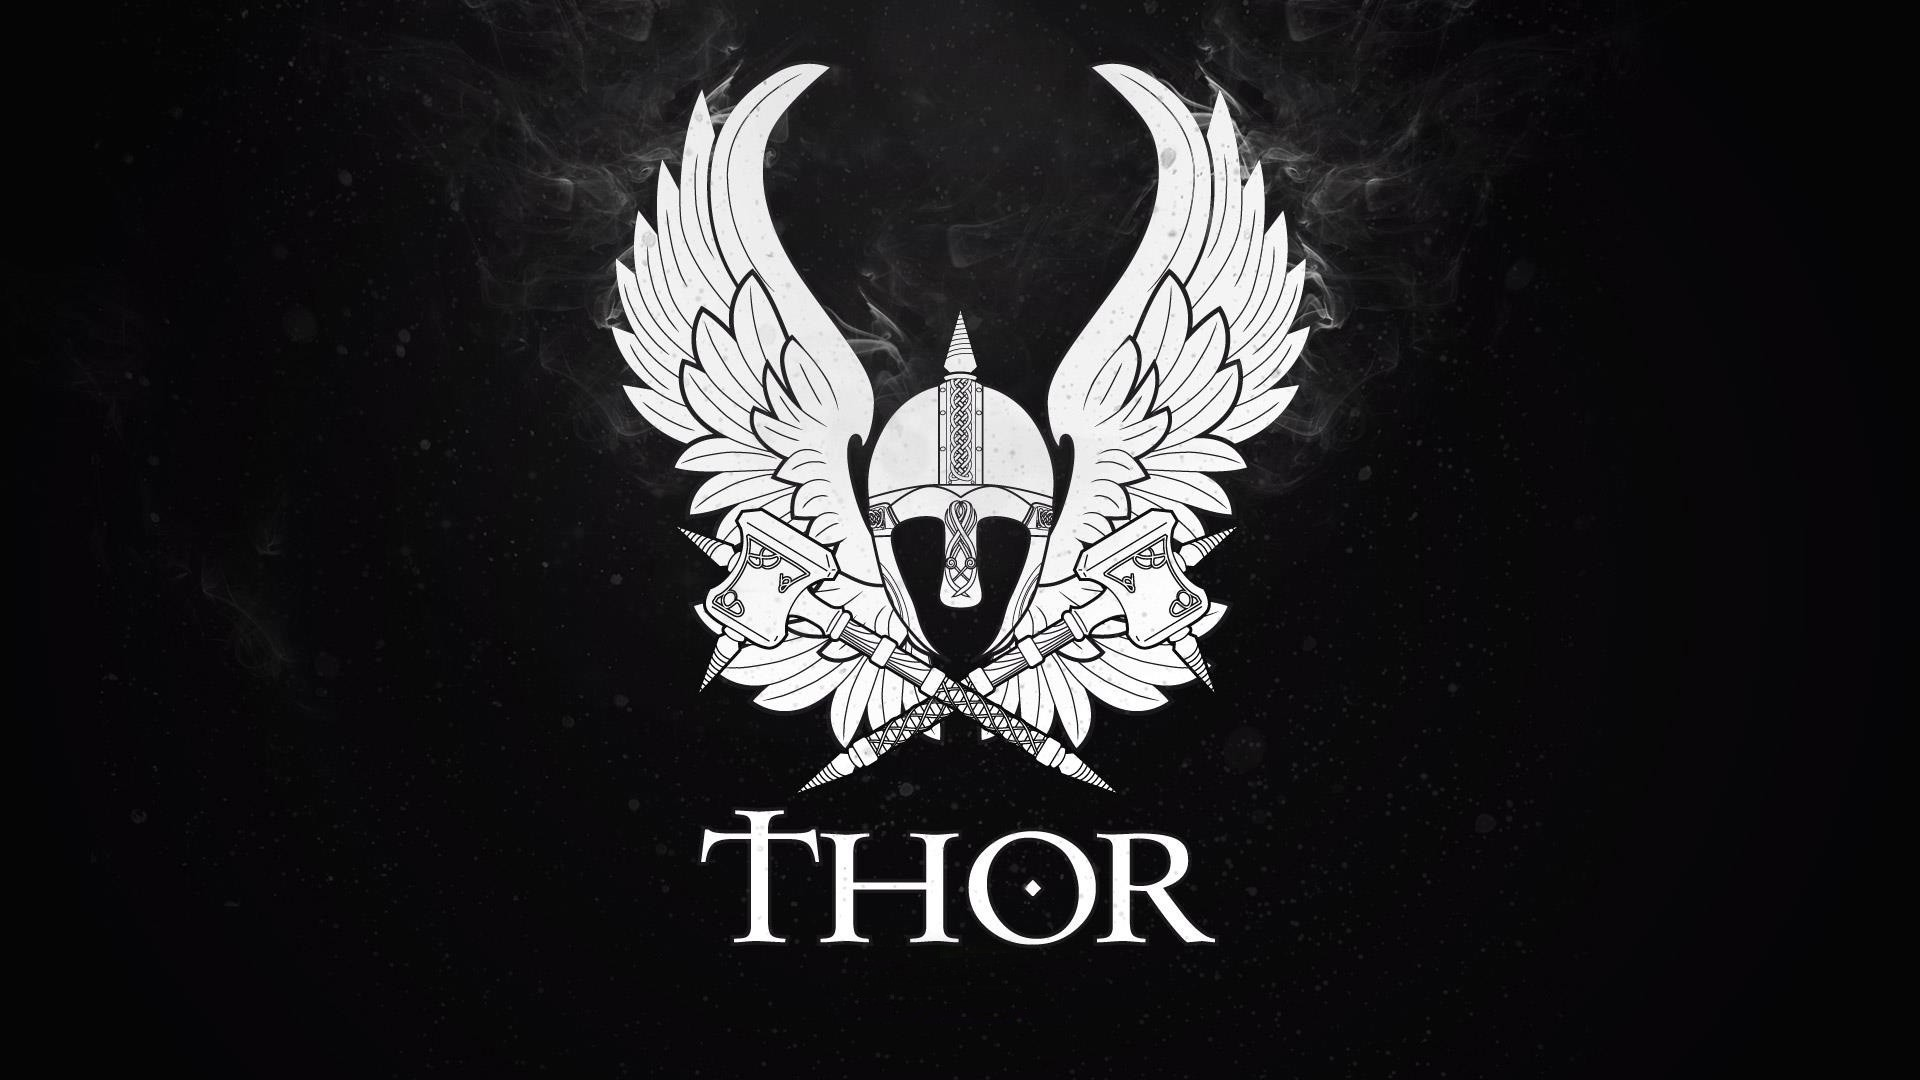 Thor Hammer Wallpapers 3d For Android The Dark World Poster Iphine